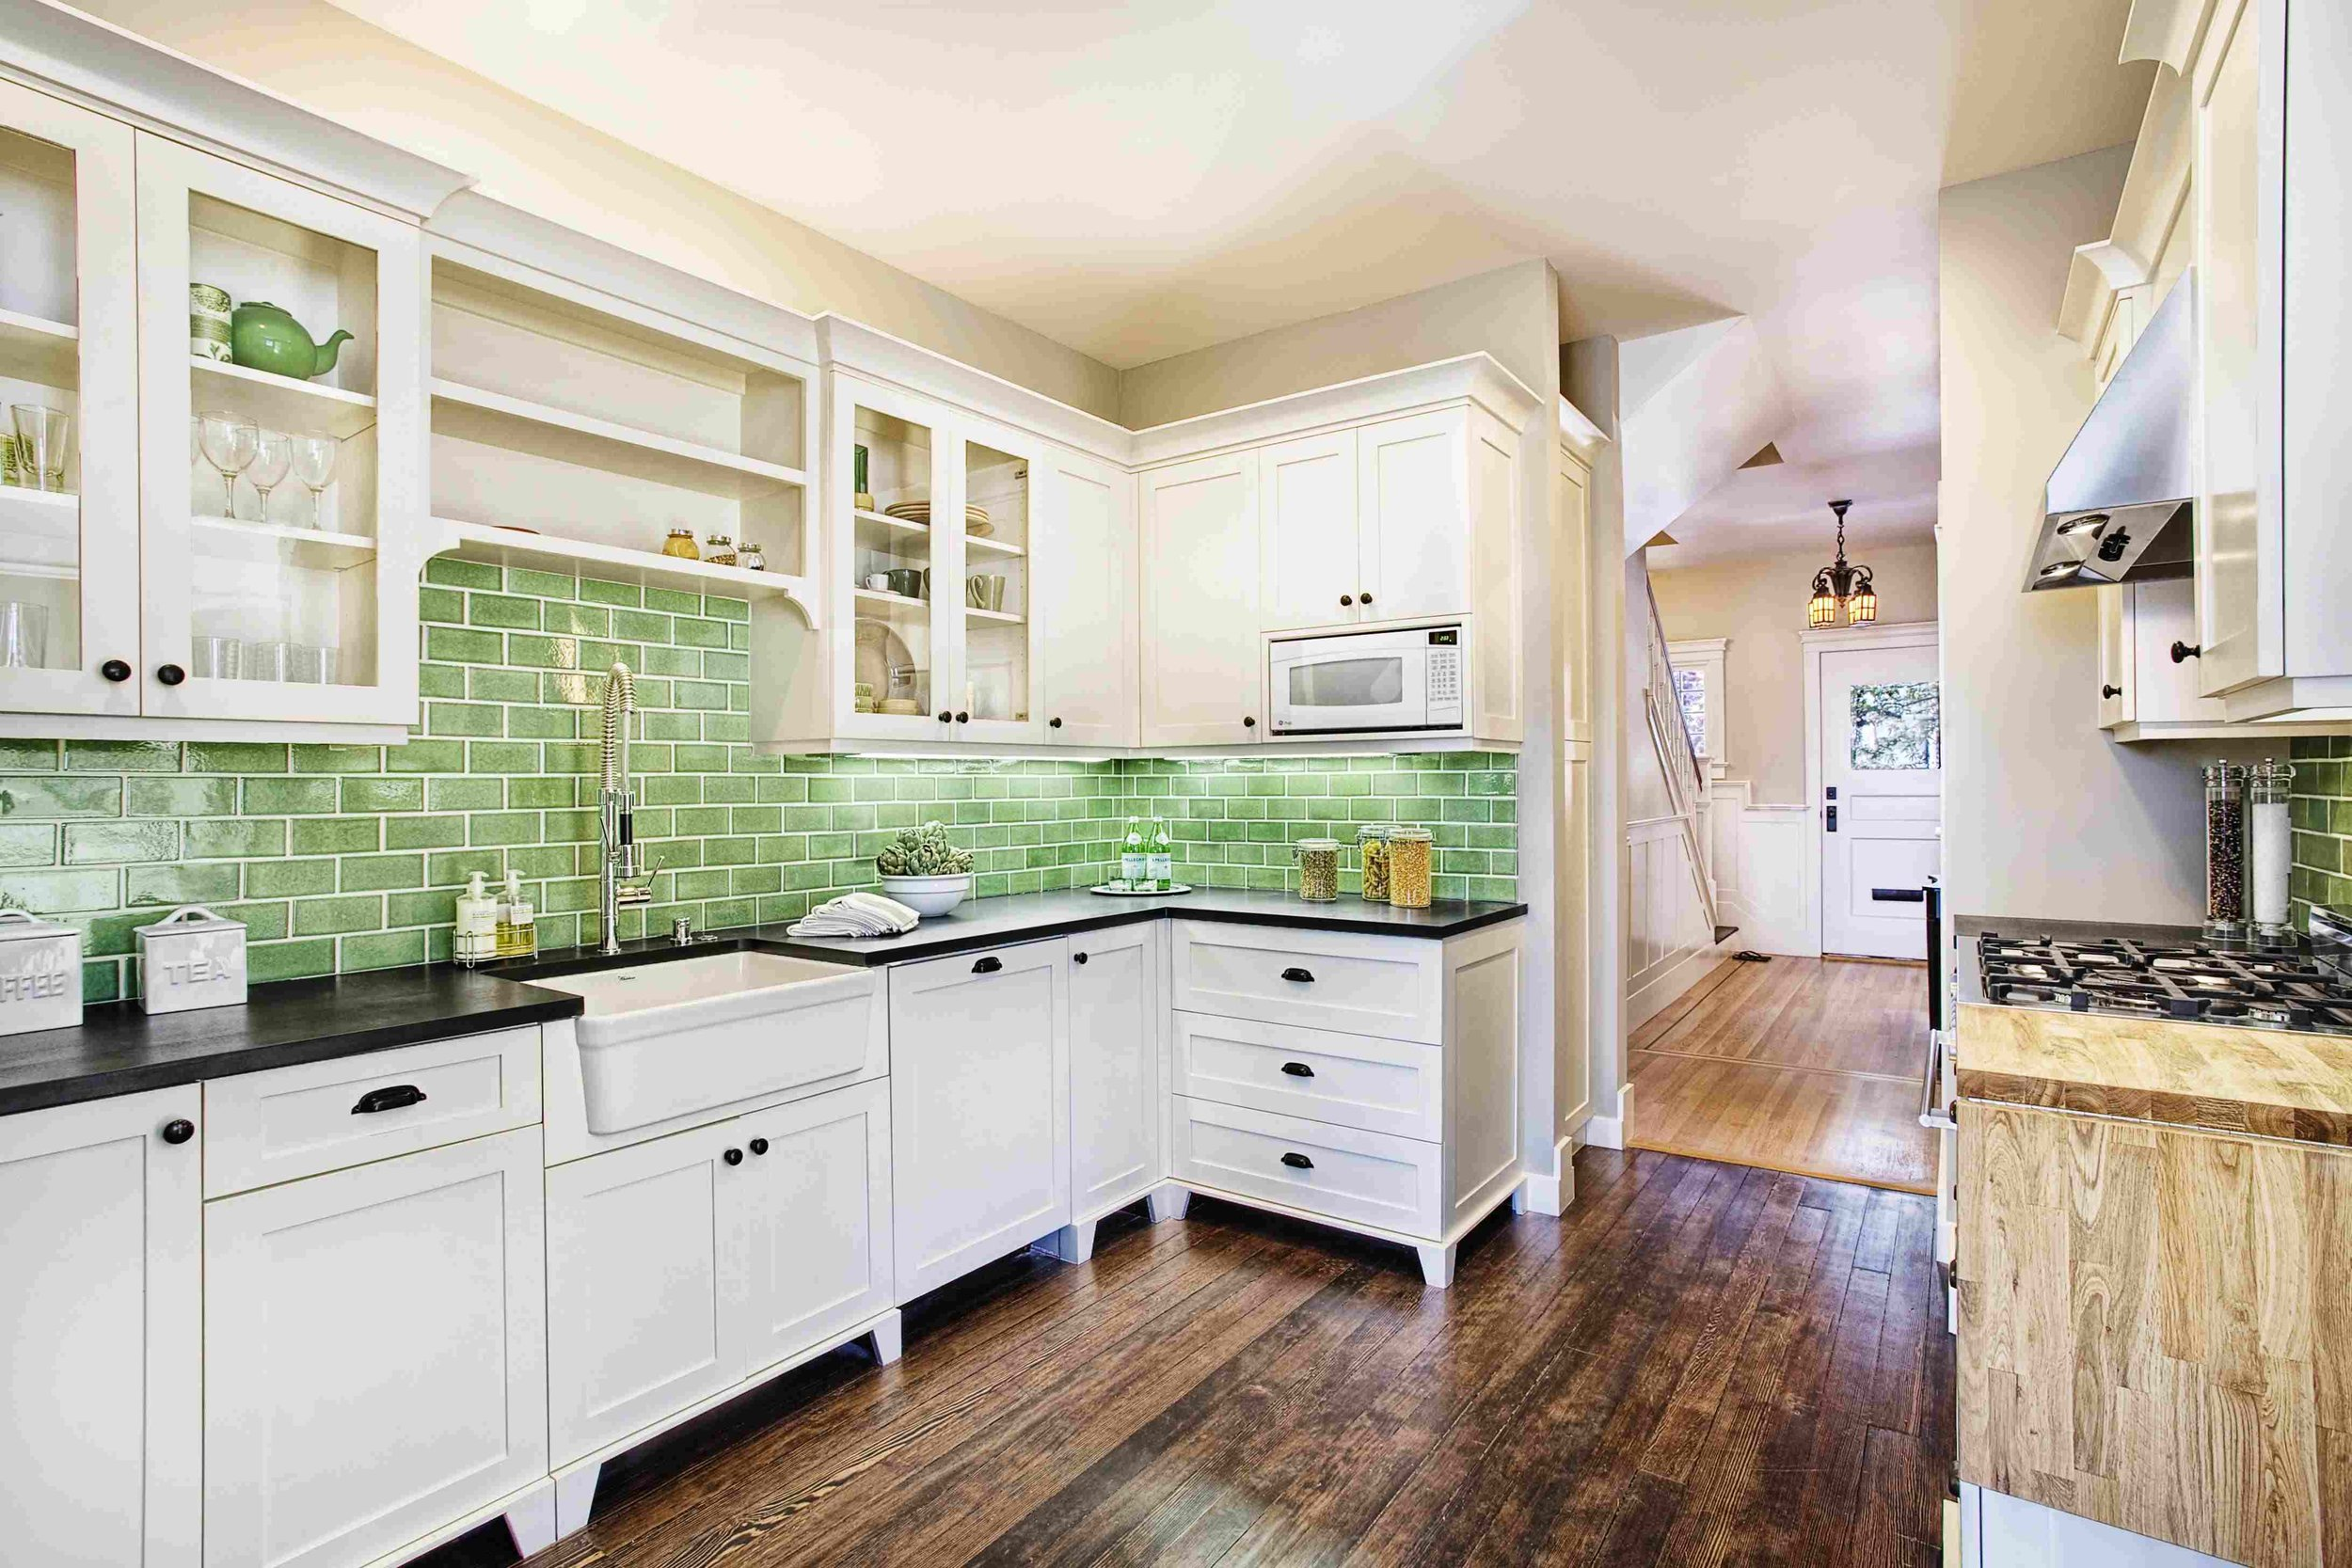 7. Colorful Kitchens - Who said kitchens had to be white or brown only? Well, 1990 - 2015 decor experts, that's who.But starting around 2015, we have seen a renaissance with the bold, beautiful and colorful kitchen.For Summer 2018 we are LOVING a little COLOR in our kitchen designs! Brightly colored elements have become a recent trend in decor, so why stop at just an accent wall?Designers are incorporating colorful light fixtures, backsplash tile, and appliances to spice up spaces into personalized and original designs.